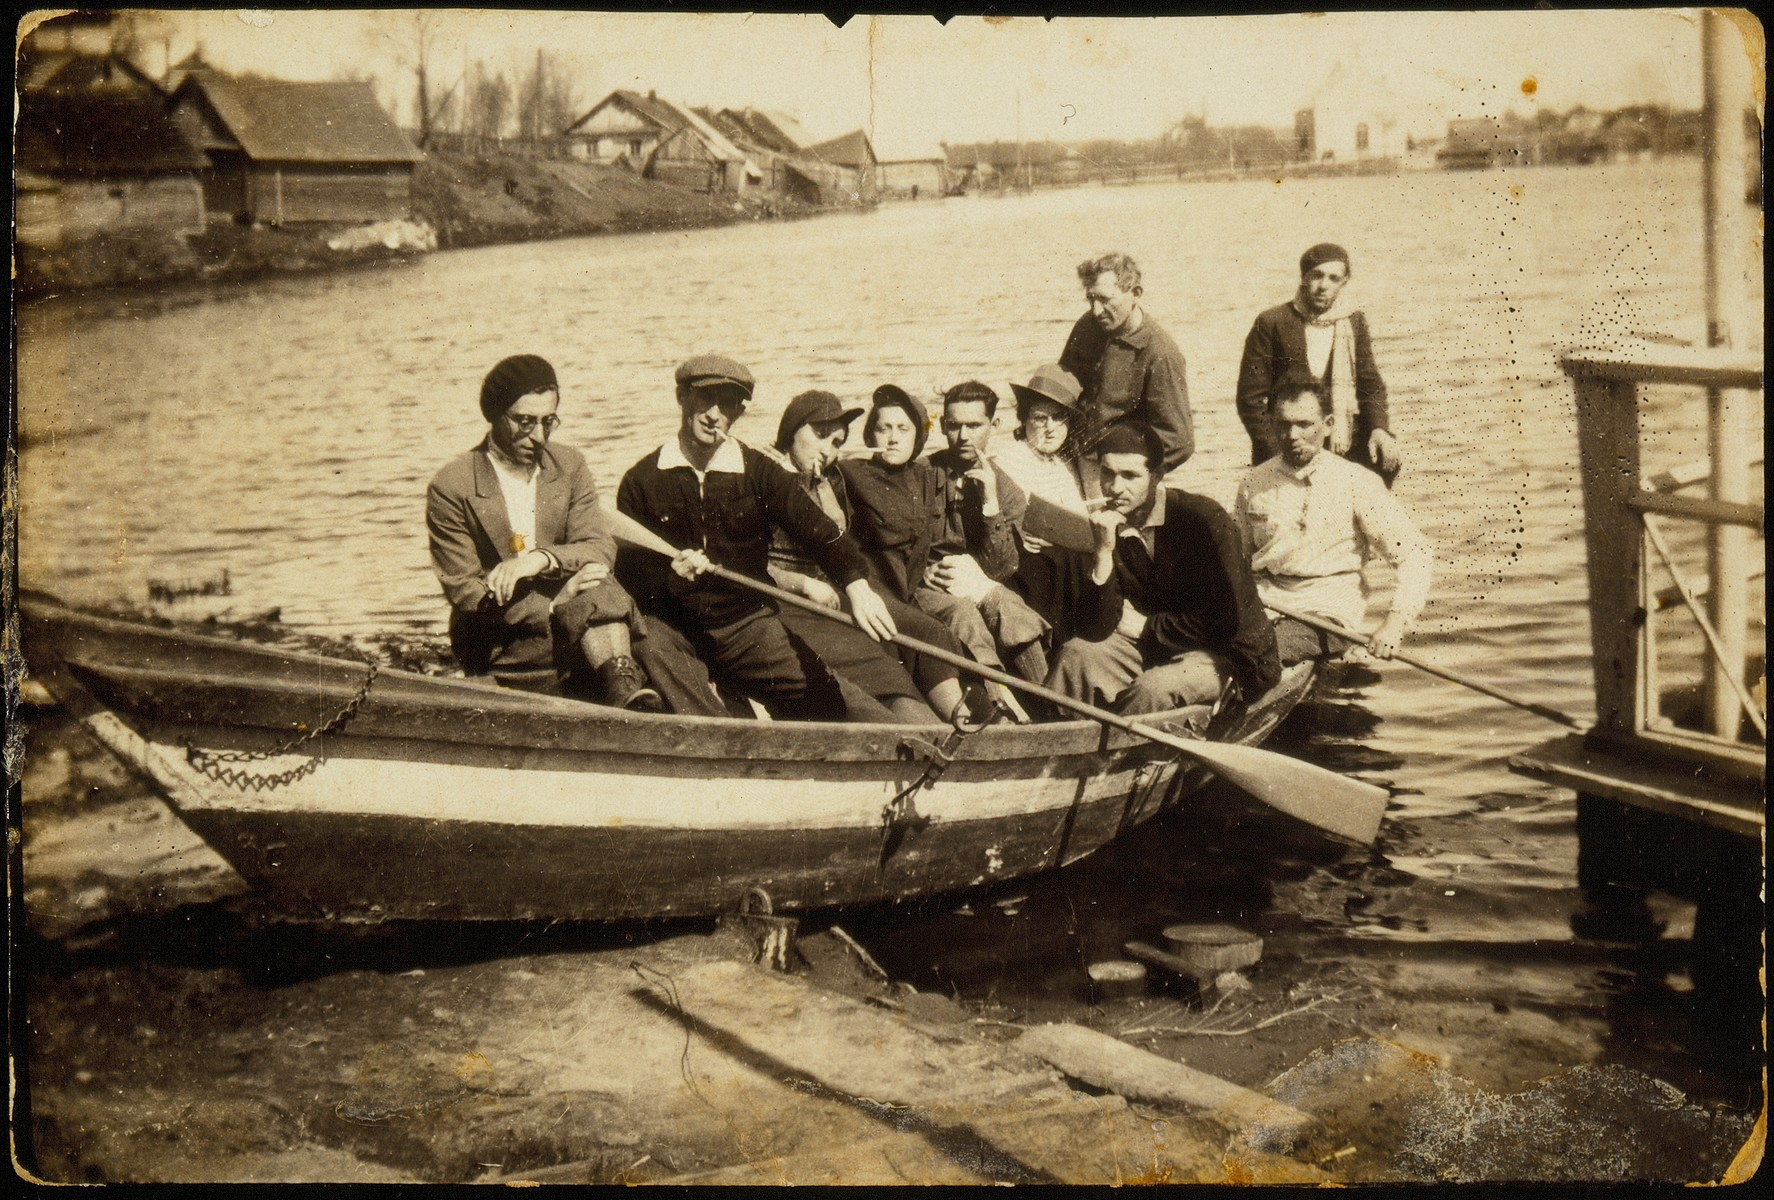 Sara Plotnik goes for a boat ride with friends from a Hehalutz hachshara.